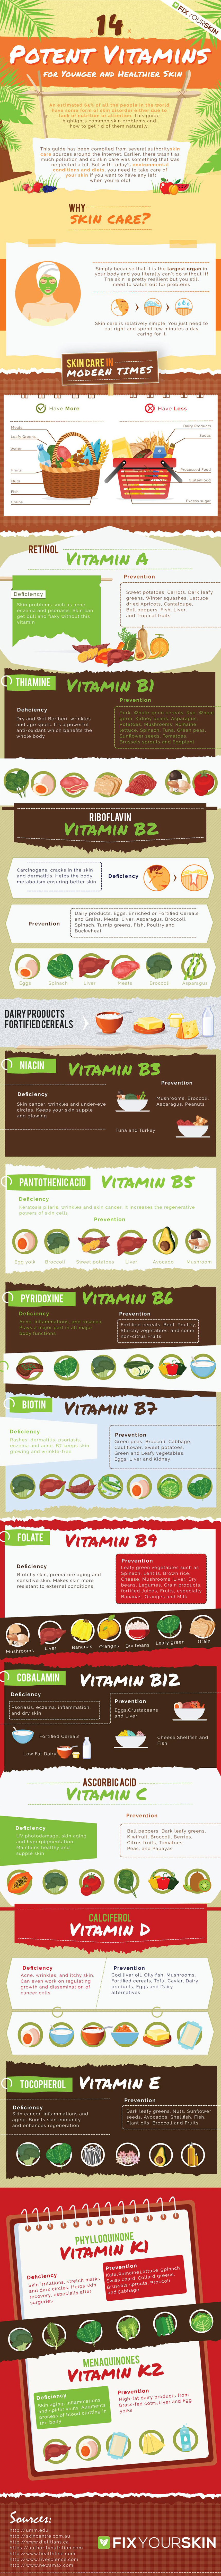 14 Best Vitamins for Skin Health and Food Sources Infographic